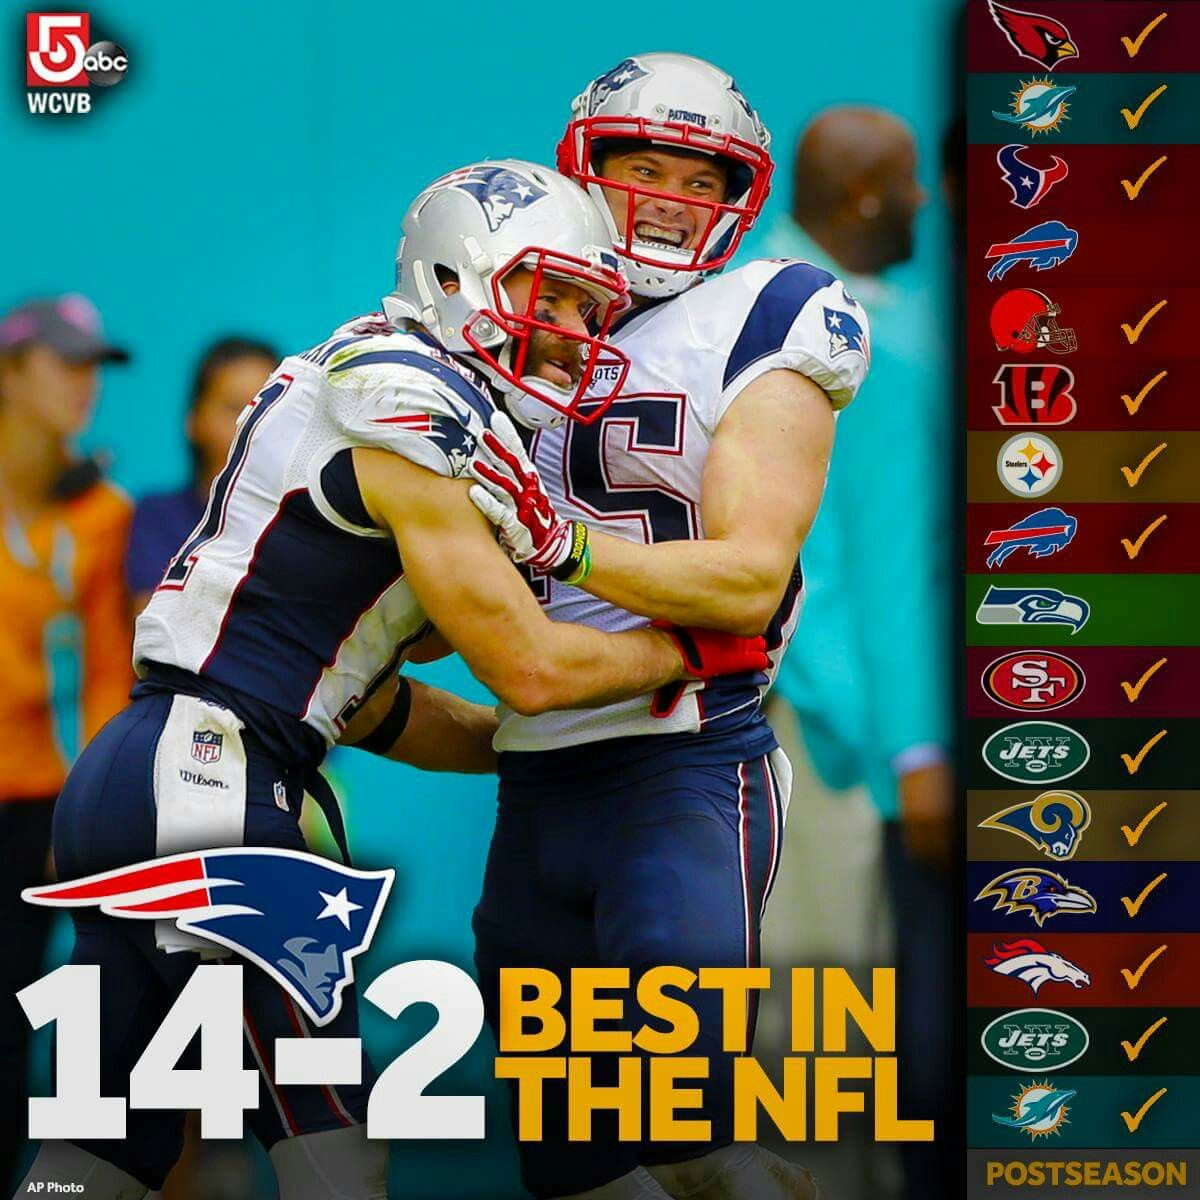 Best In The Nfl The Patriots Finish The Nfl Regular Season With A 14 2 Record The Best Of An New England Patriots Merchandise New England Patriots Patriots